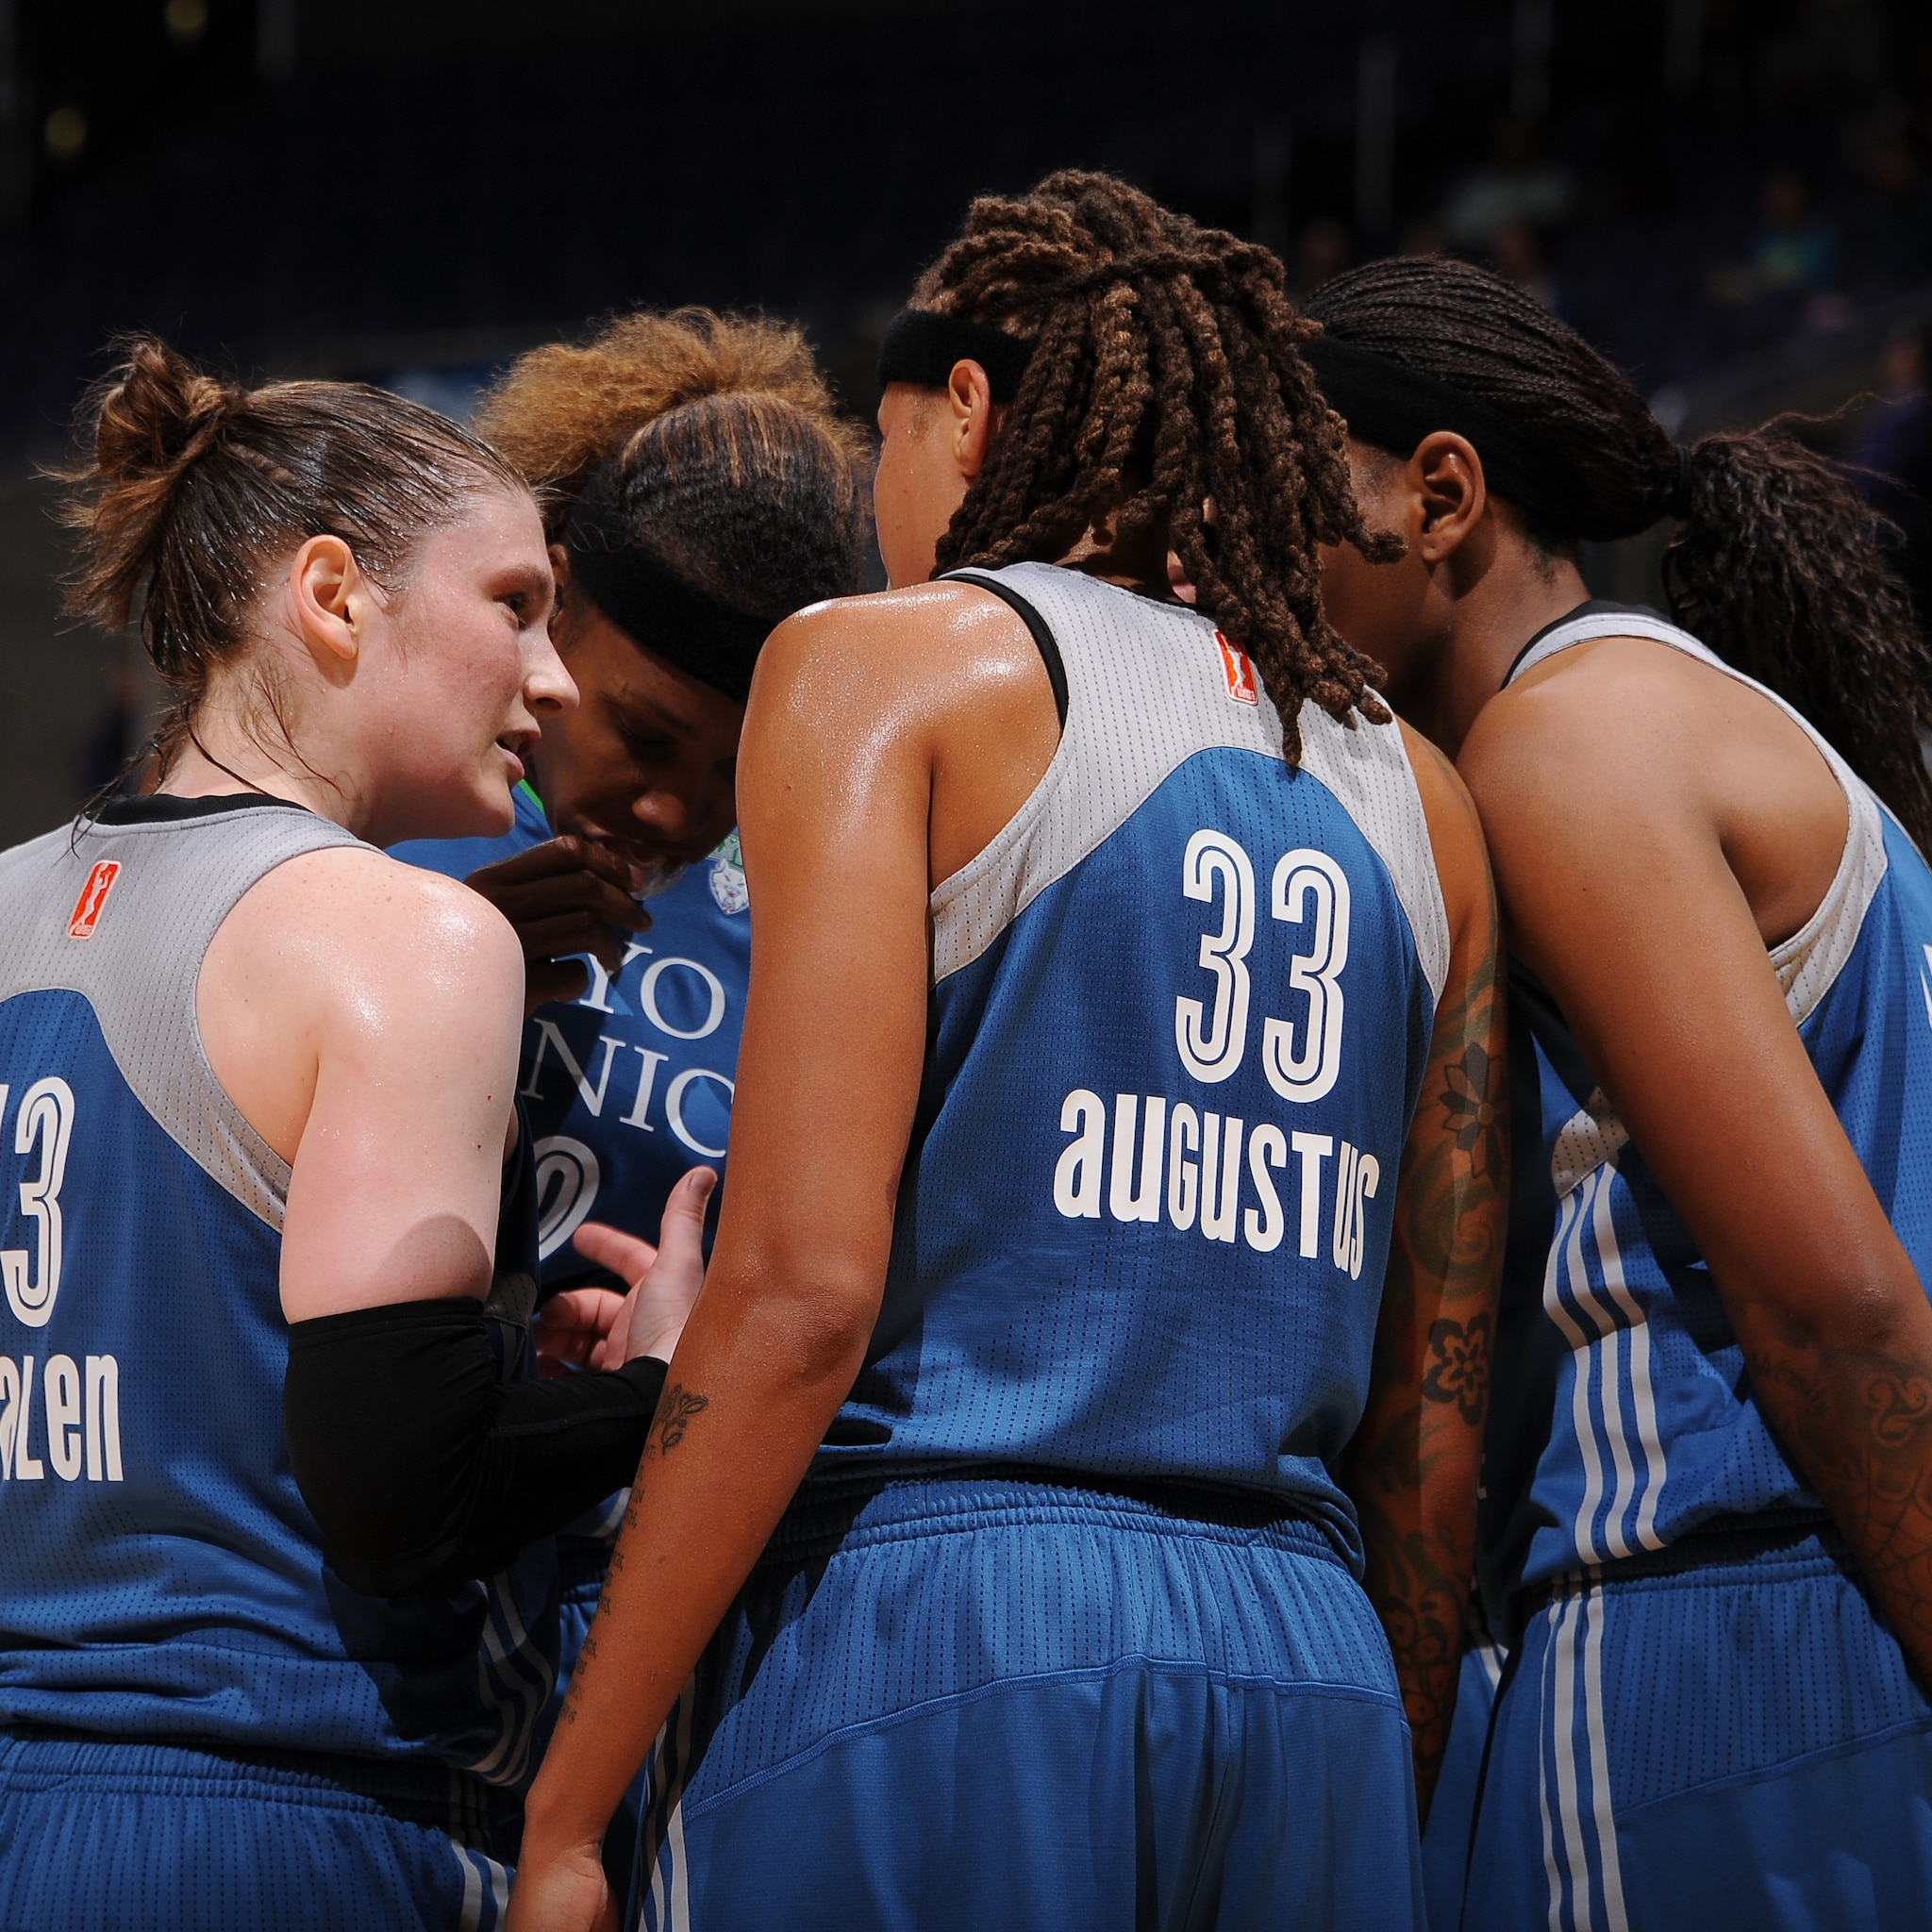 The Lynx, despite being down by five at halftime, they regained their composure and ran away in the second half, outscoring the Sparks in the third quarter 23-9.